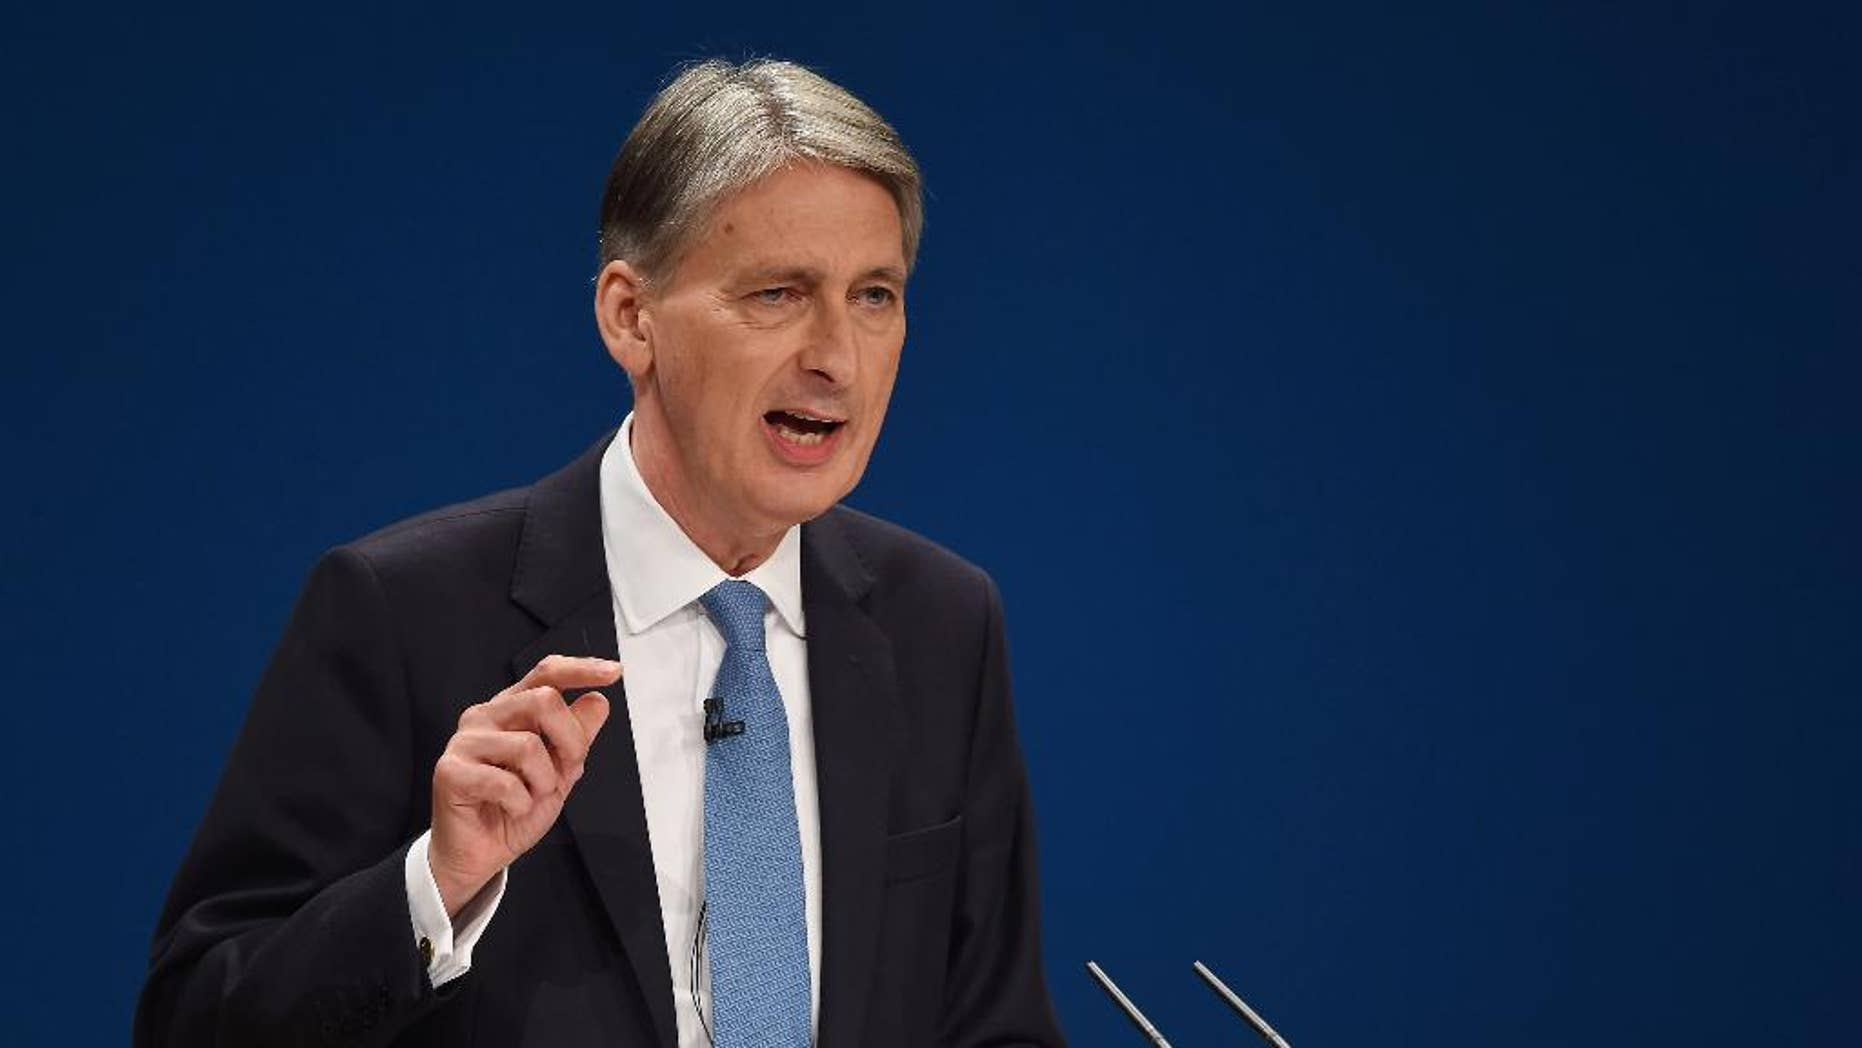 Britain's Chancellor of the Exchequer Philip Hammond speaks on the second day of the Conservative party conference in Birmingham, England, Monday Oct. 3, 2016. Philip Hammond told the BBC on Monday that Britain will face a couple of years, or longer, of uncertainty as Britain goes through the process of leaving the 28-nation trading bloc. (Joe Giddens/PA via AP)